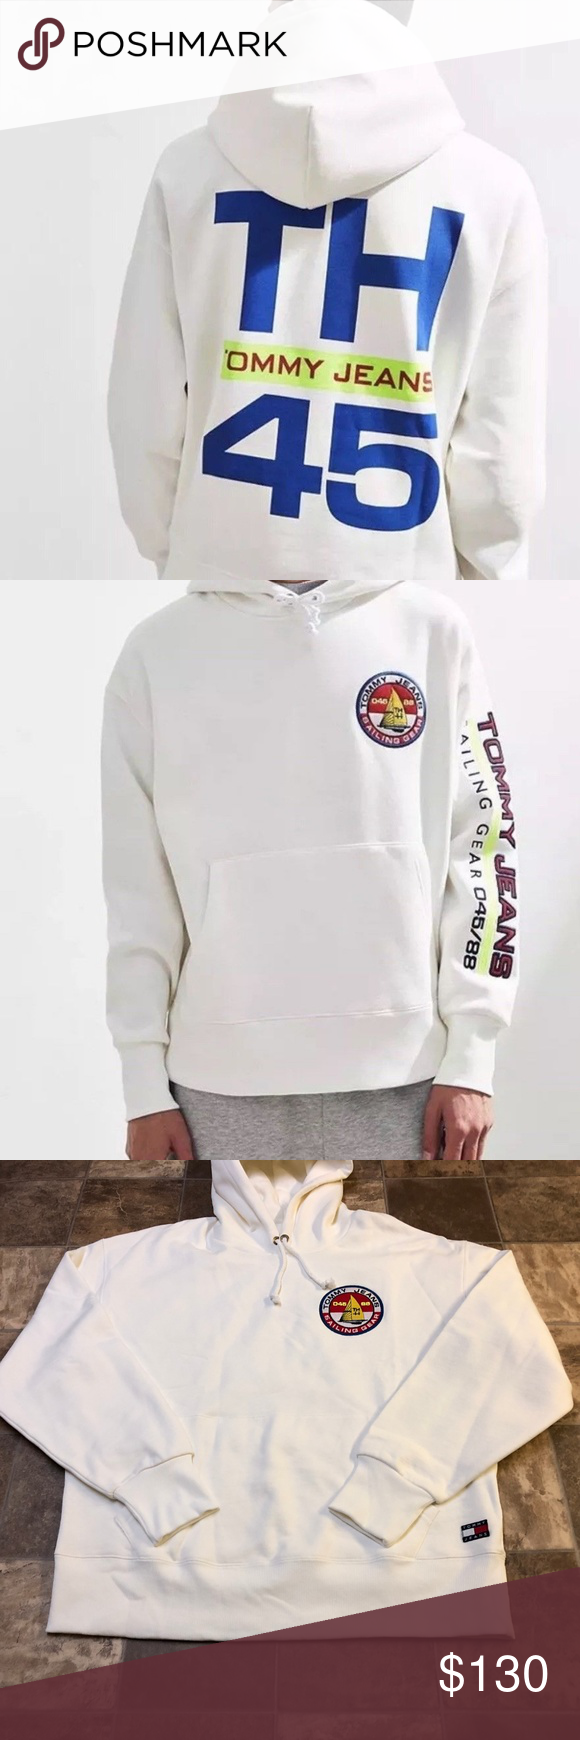 Tommy Hilfiger Capsule Collection Sailing Hoodie Tommy Hilfiger Hoodies Men Tommy Hilfiger Jackets [ 1740 x 580 Pixel ]